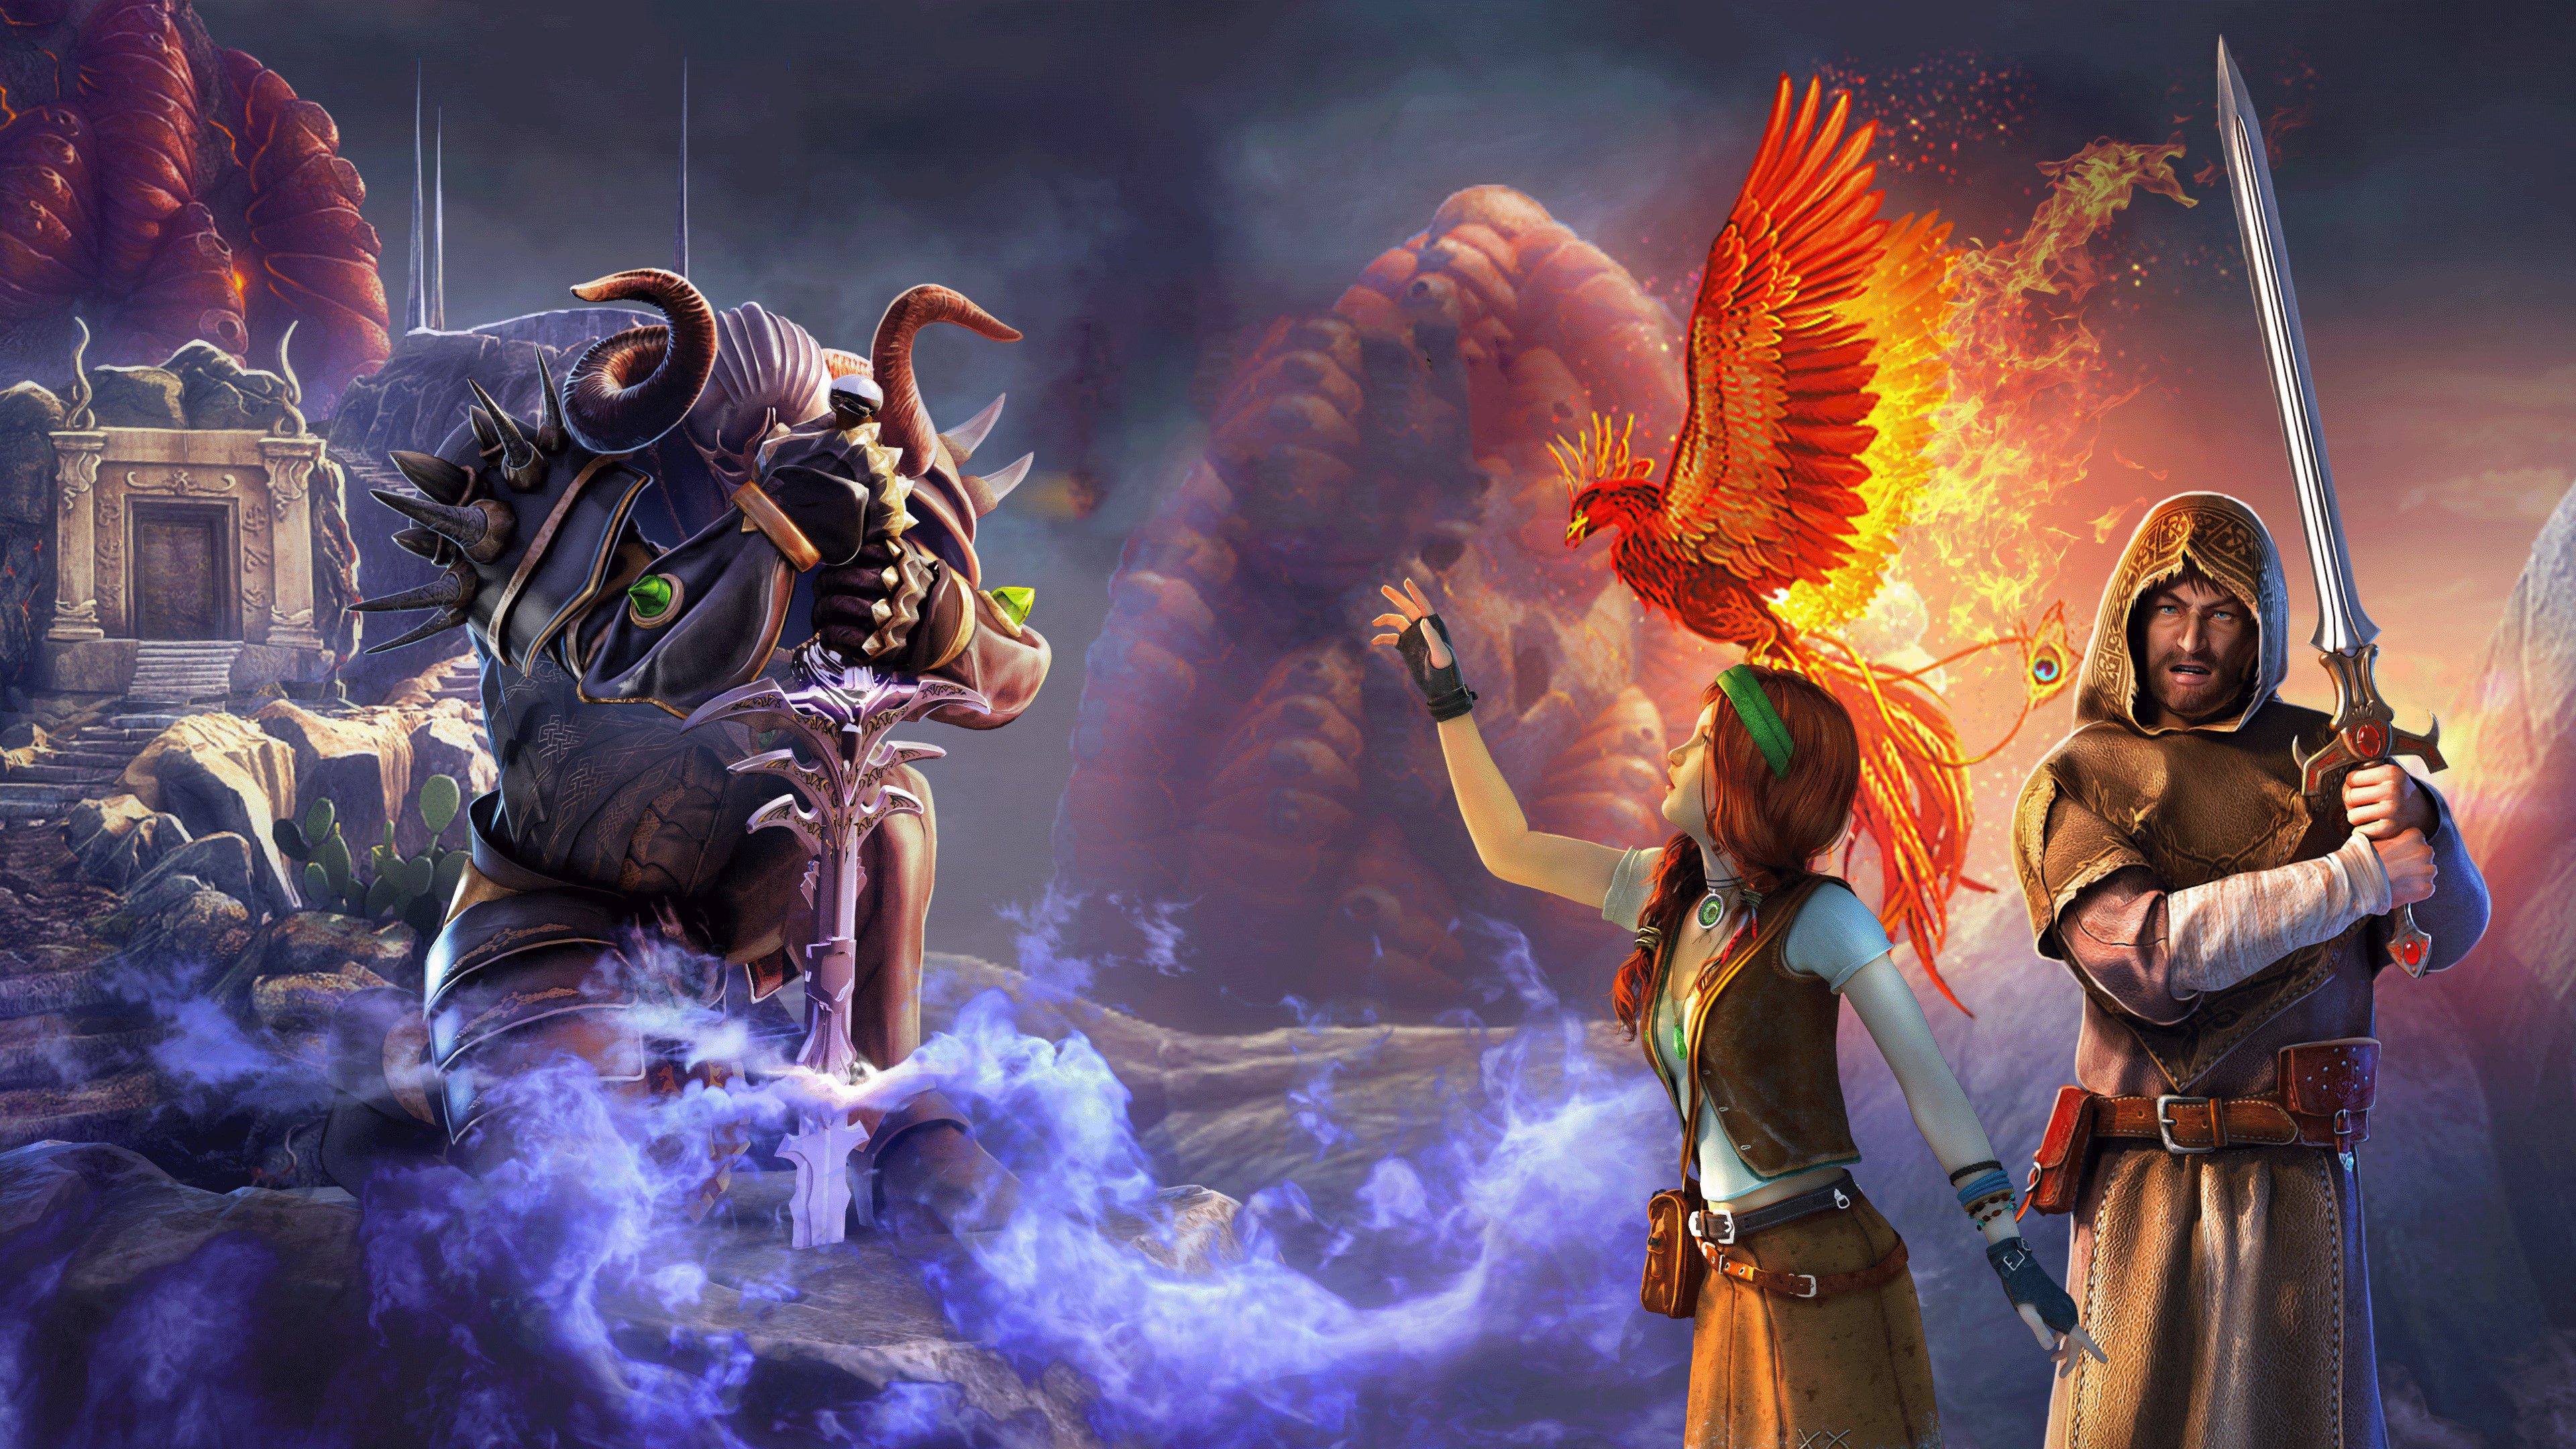 darkness and flame born of fire 1568056581 - Darkness And Flame Born Of Fire - hd-wallpapers, games wallpapers, 4k-wallpapers